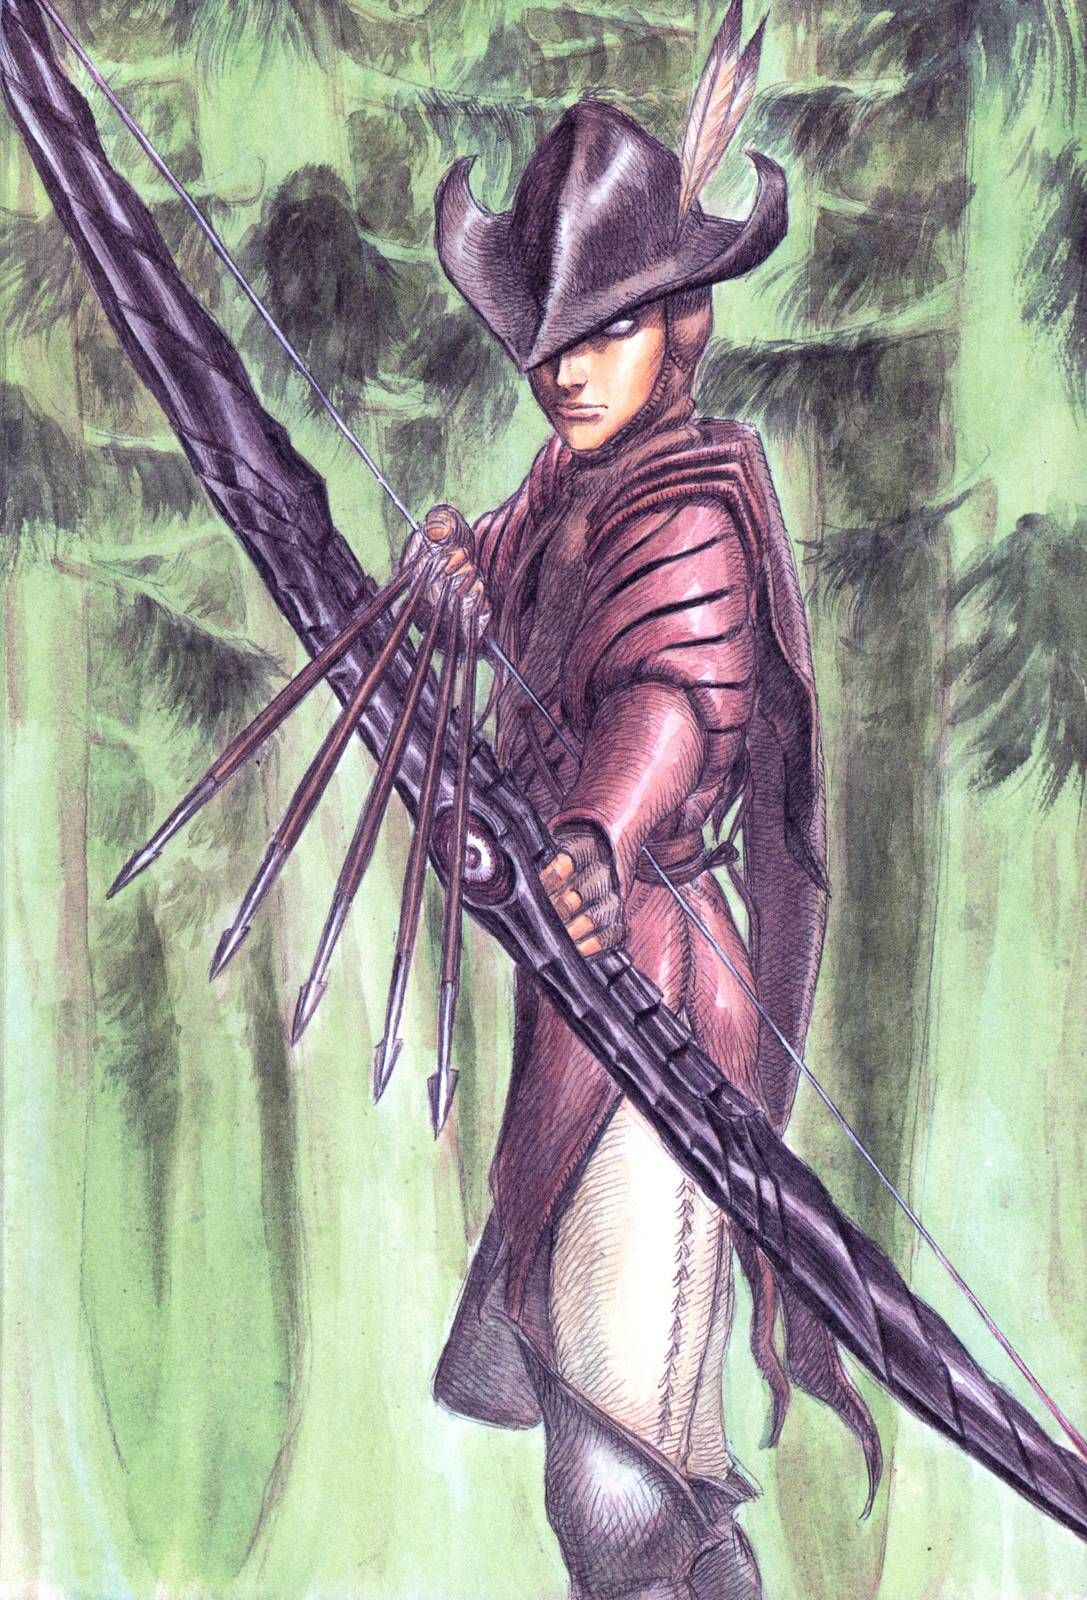 BERSERK (Kentaro Miura), Irvine (Berserk), Nature, Bow (Weapon), Forest, Archery